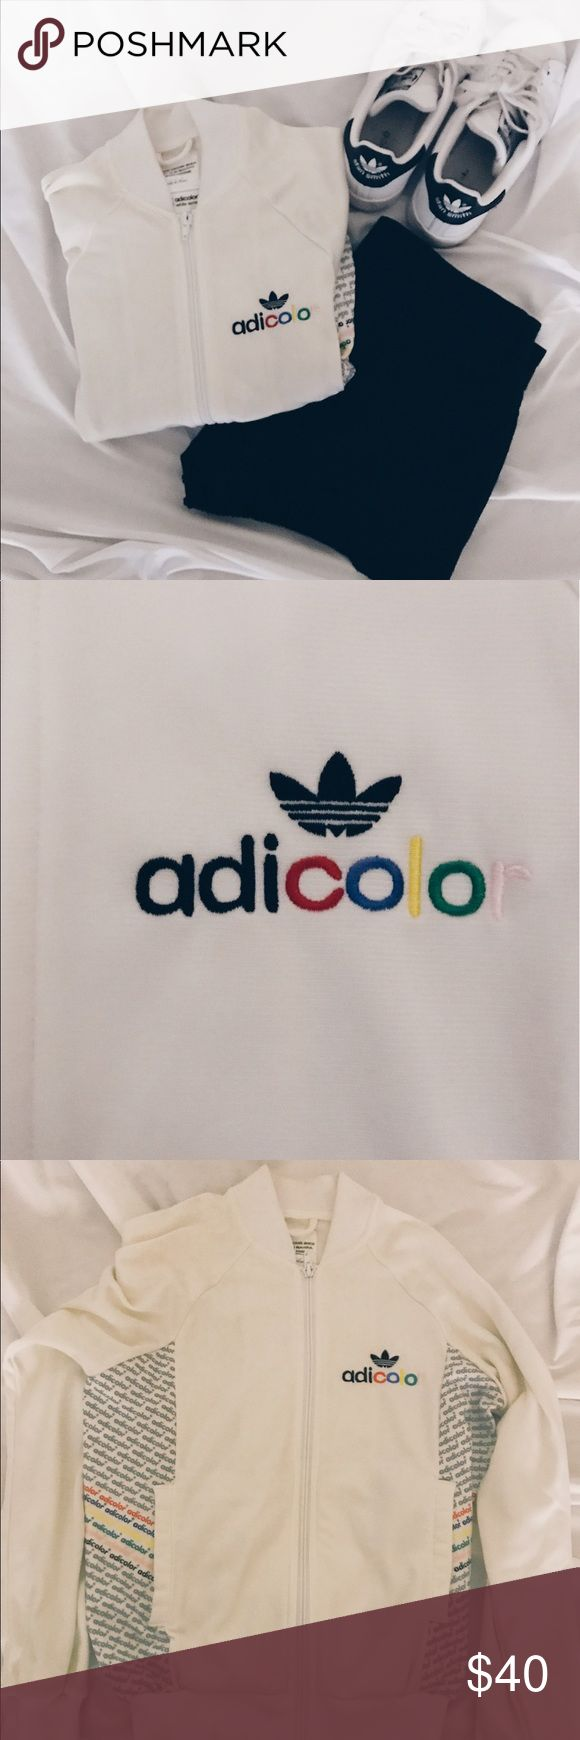 Adidas Adicolor Track Jacket Very lightly worn. Limited edition w5 Adicolor White Series Adidas Jackets & Coats